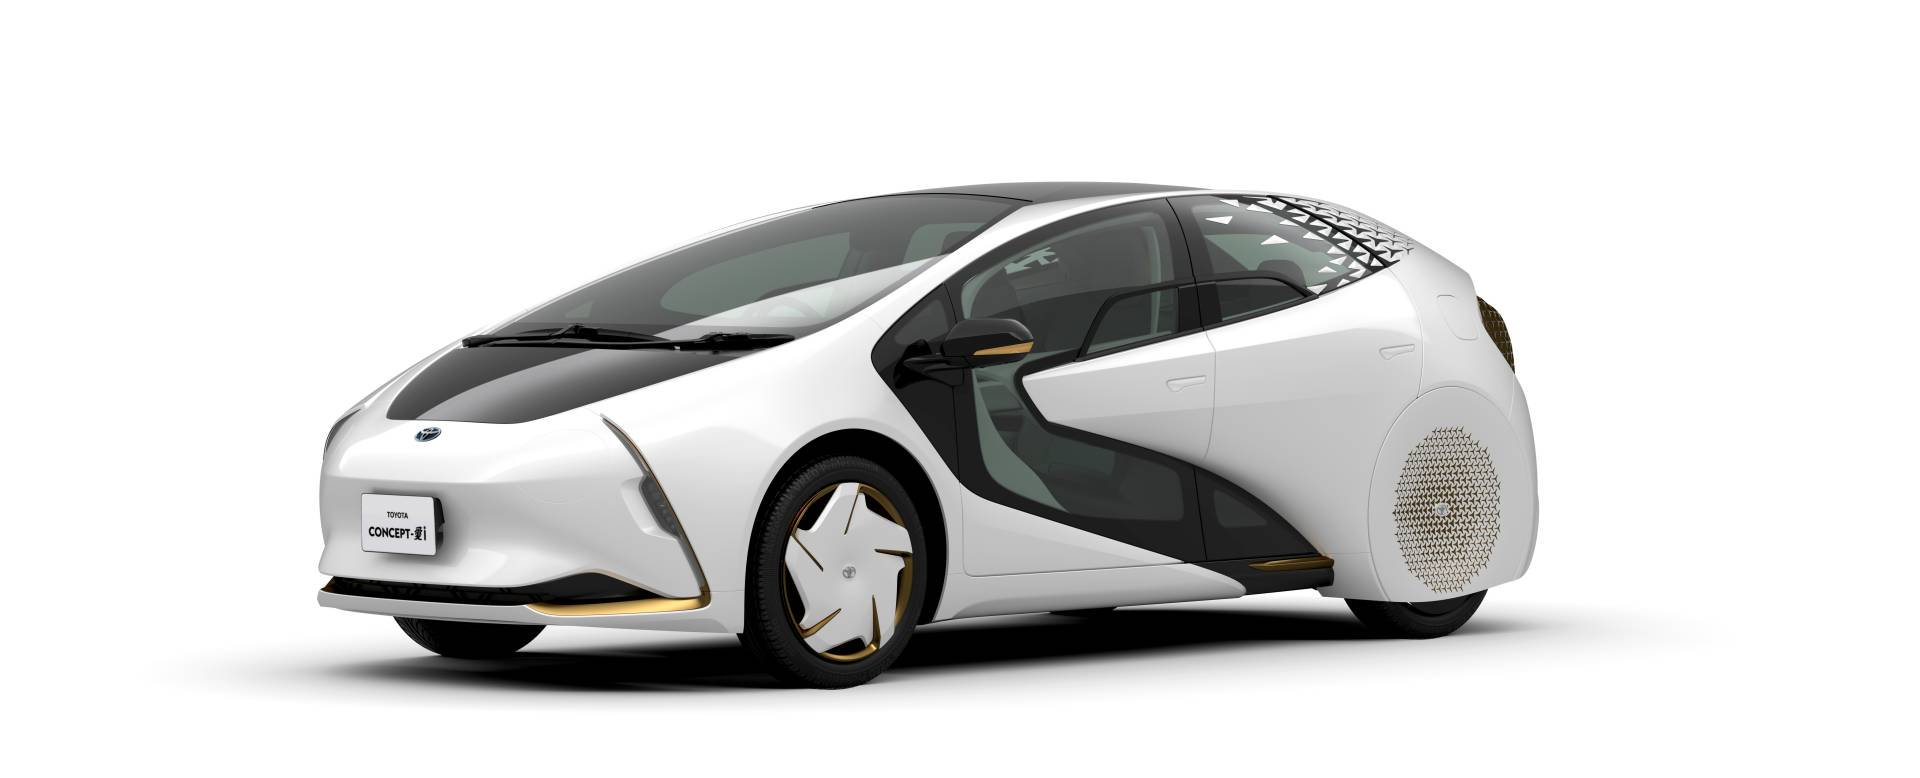 Updated-Toyota-Concept-i-and-e-Palette-for-Tokyo-Olympic-Games-2020-1